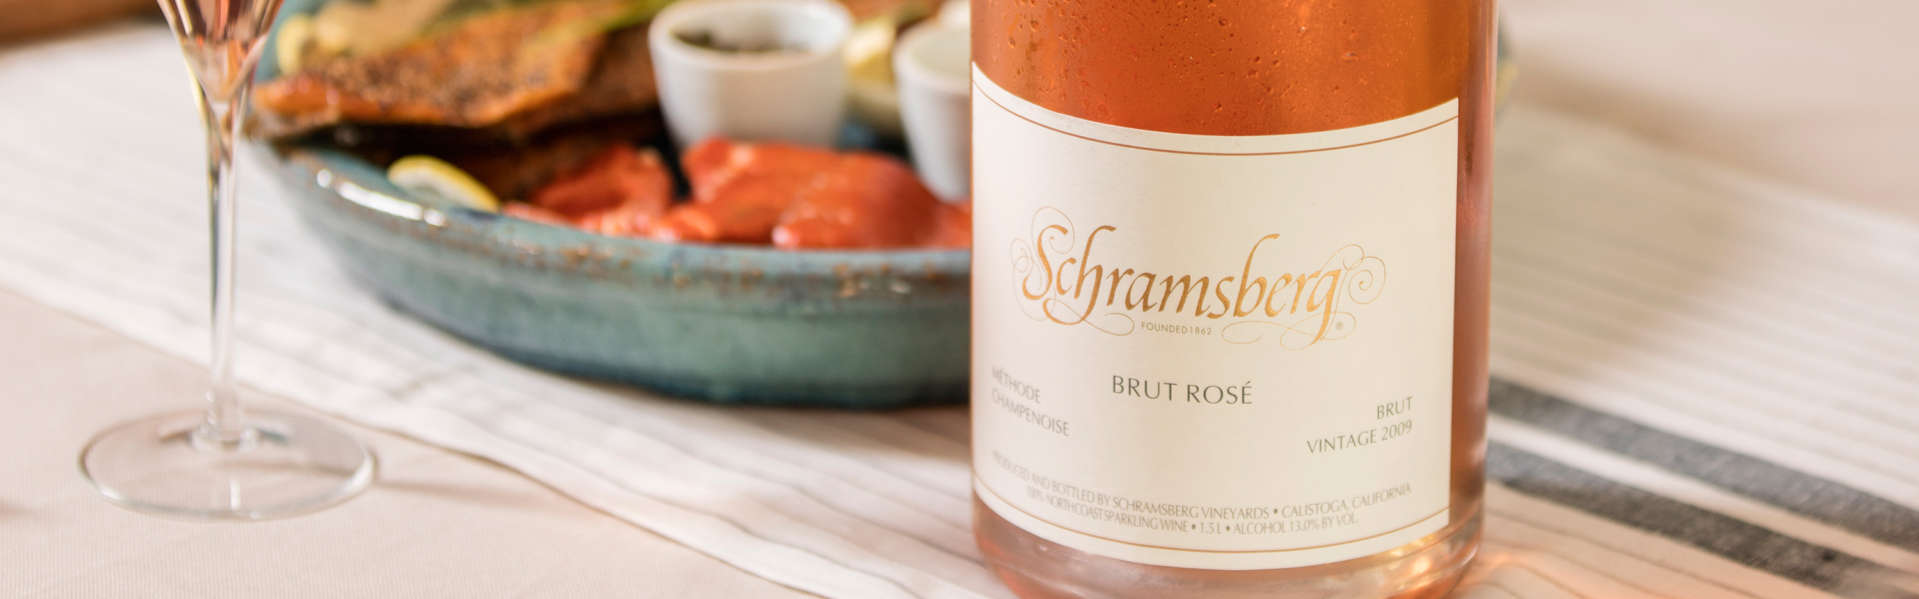 Schramsberg 2007 Brut Rosé sparkling wine paired with cracked dungeness crab